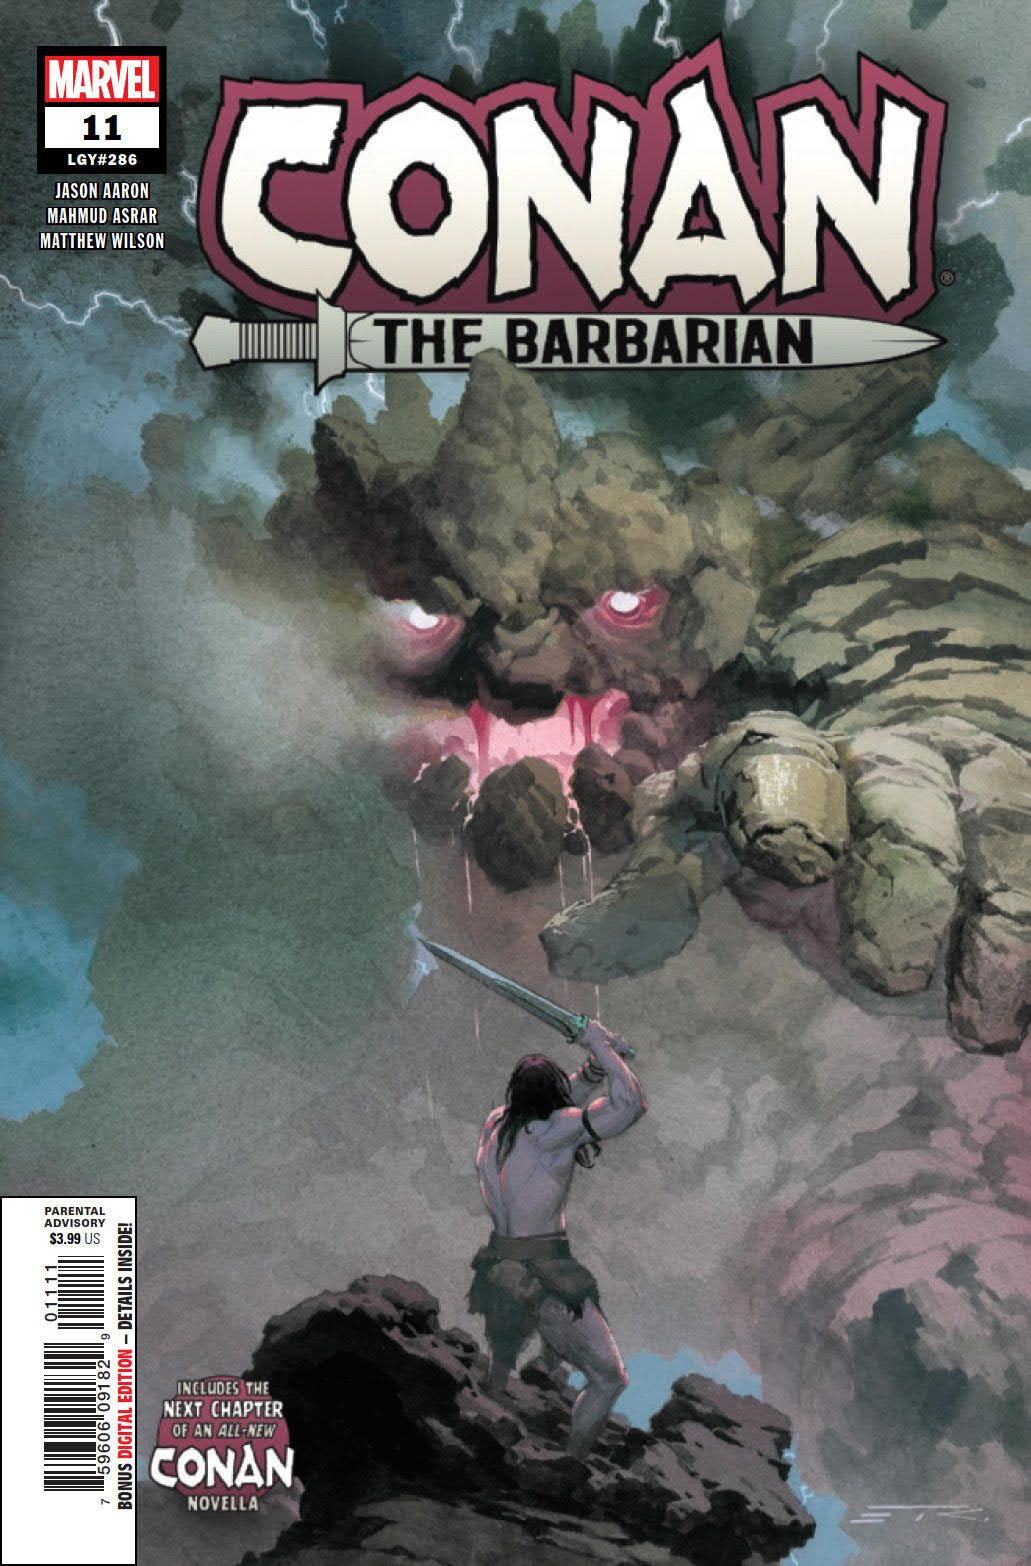 PREVIEW: Conan the Barbarian #11 | CBR